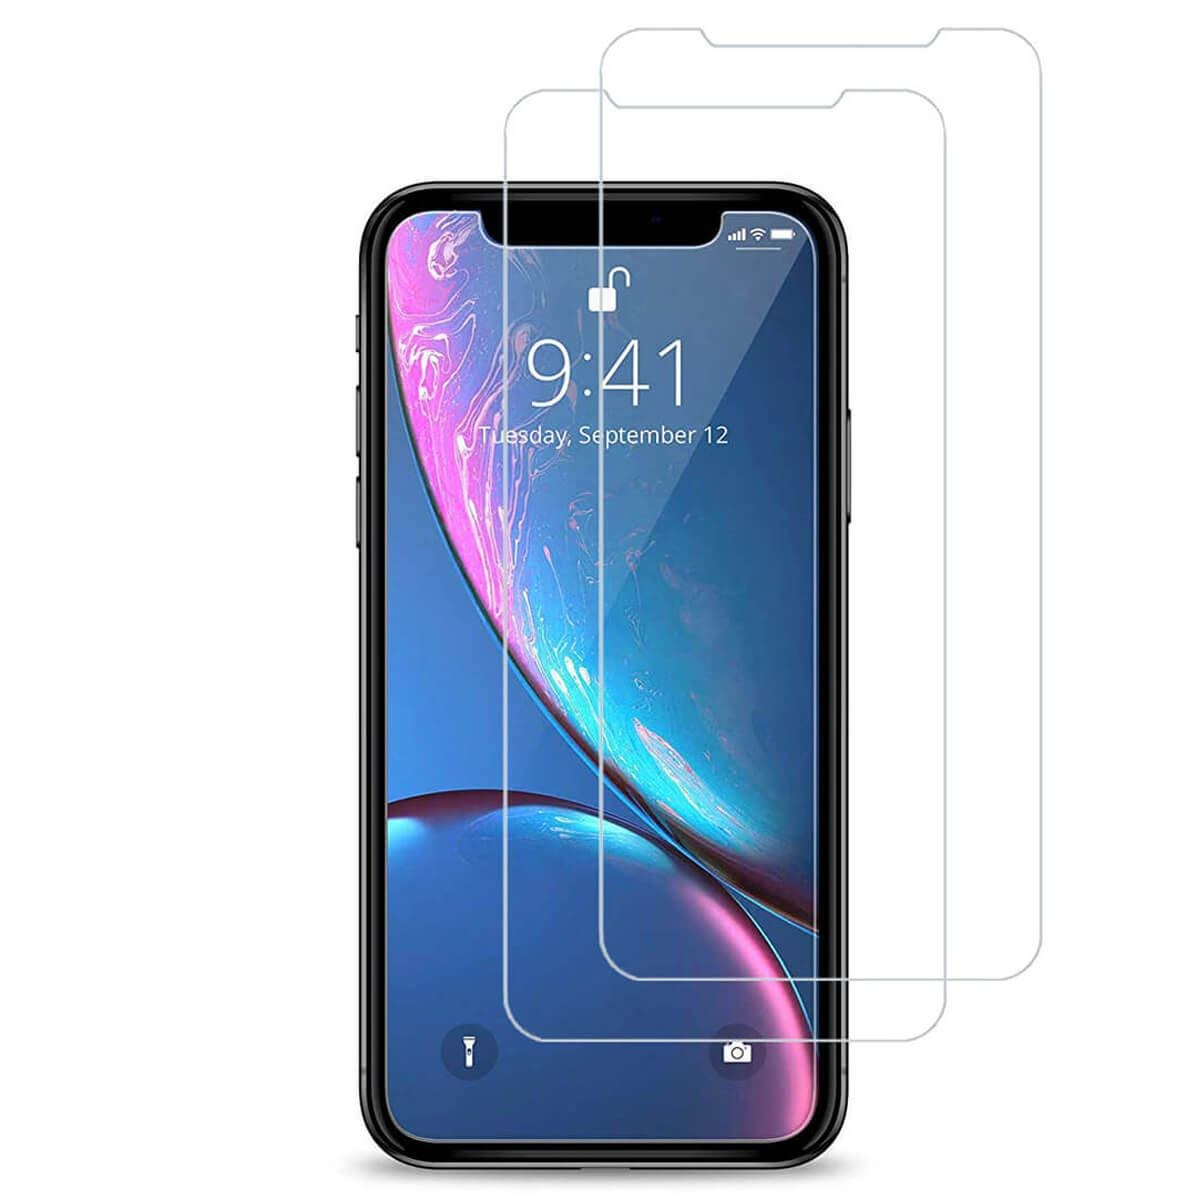 Tempered-Glass-Film-Screen-Protector-For-iPhone-12-Pro-Max-Mini-XR-XS-Max-8-7-6s thumbnail 25